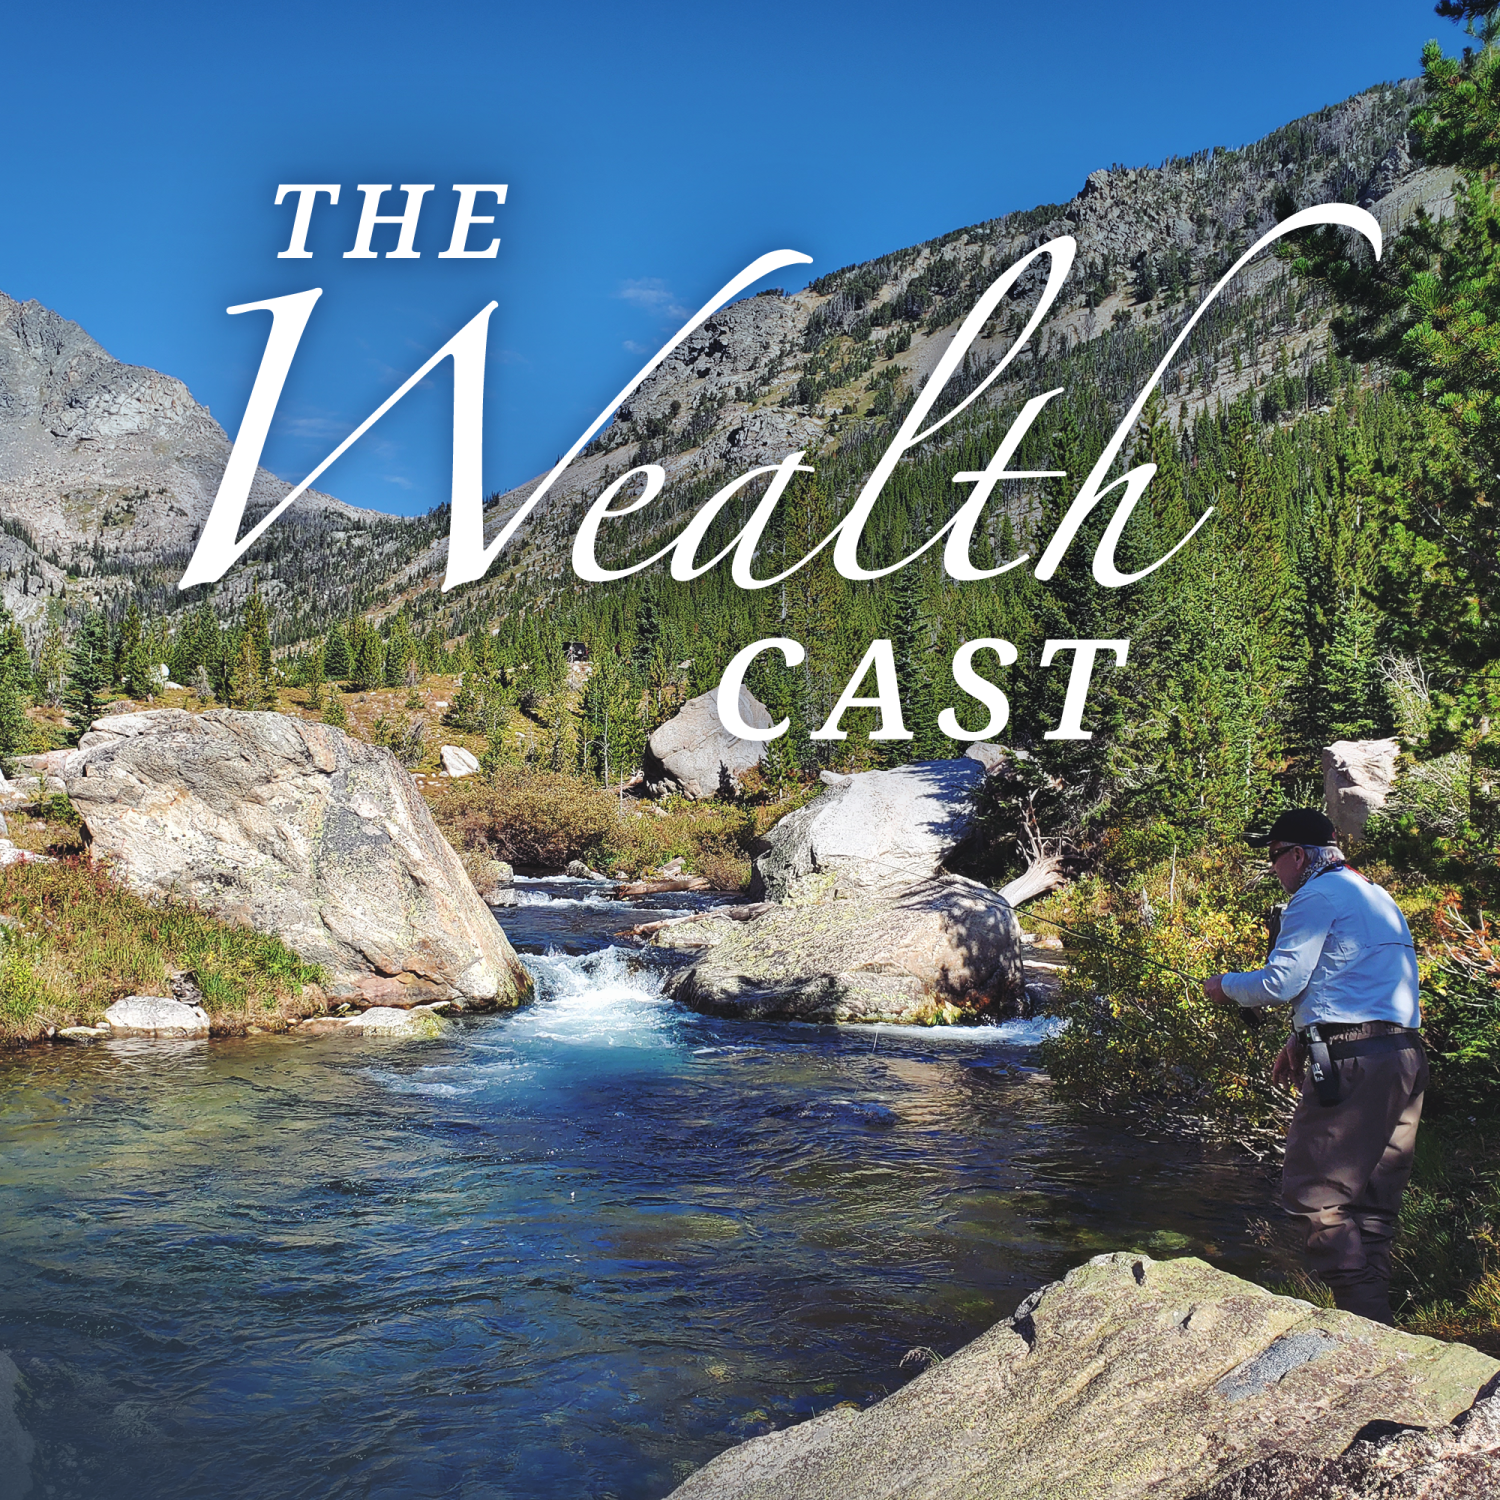 The Wealth Cast logo on a background of a man fly fishing in a stream in a mountainous area